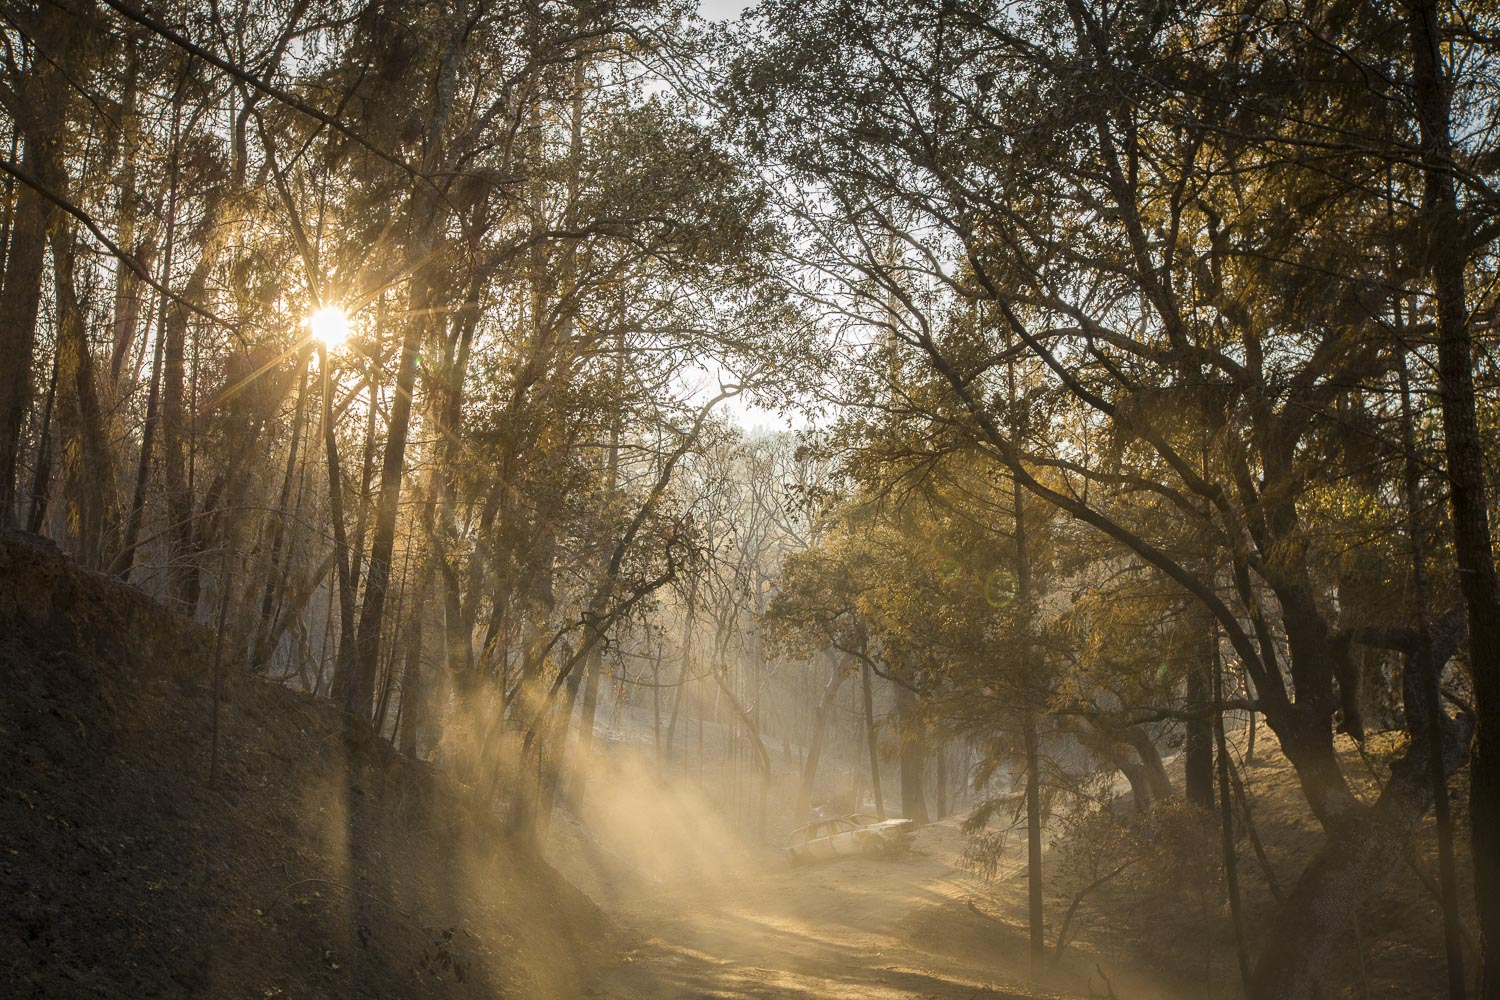 A burned car sits on the road to the Monroe family property, destroyed by wildfire in a secluded neighborhood off Tomki Road Oct. 15, 2017 in Redwood Valley, CA.